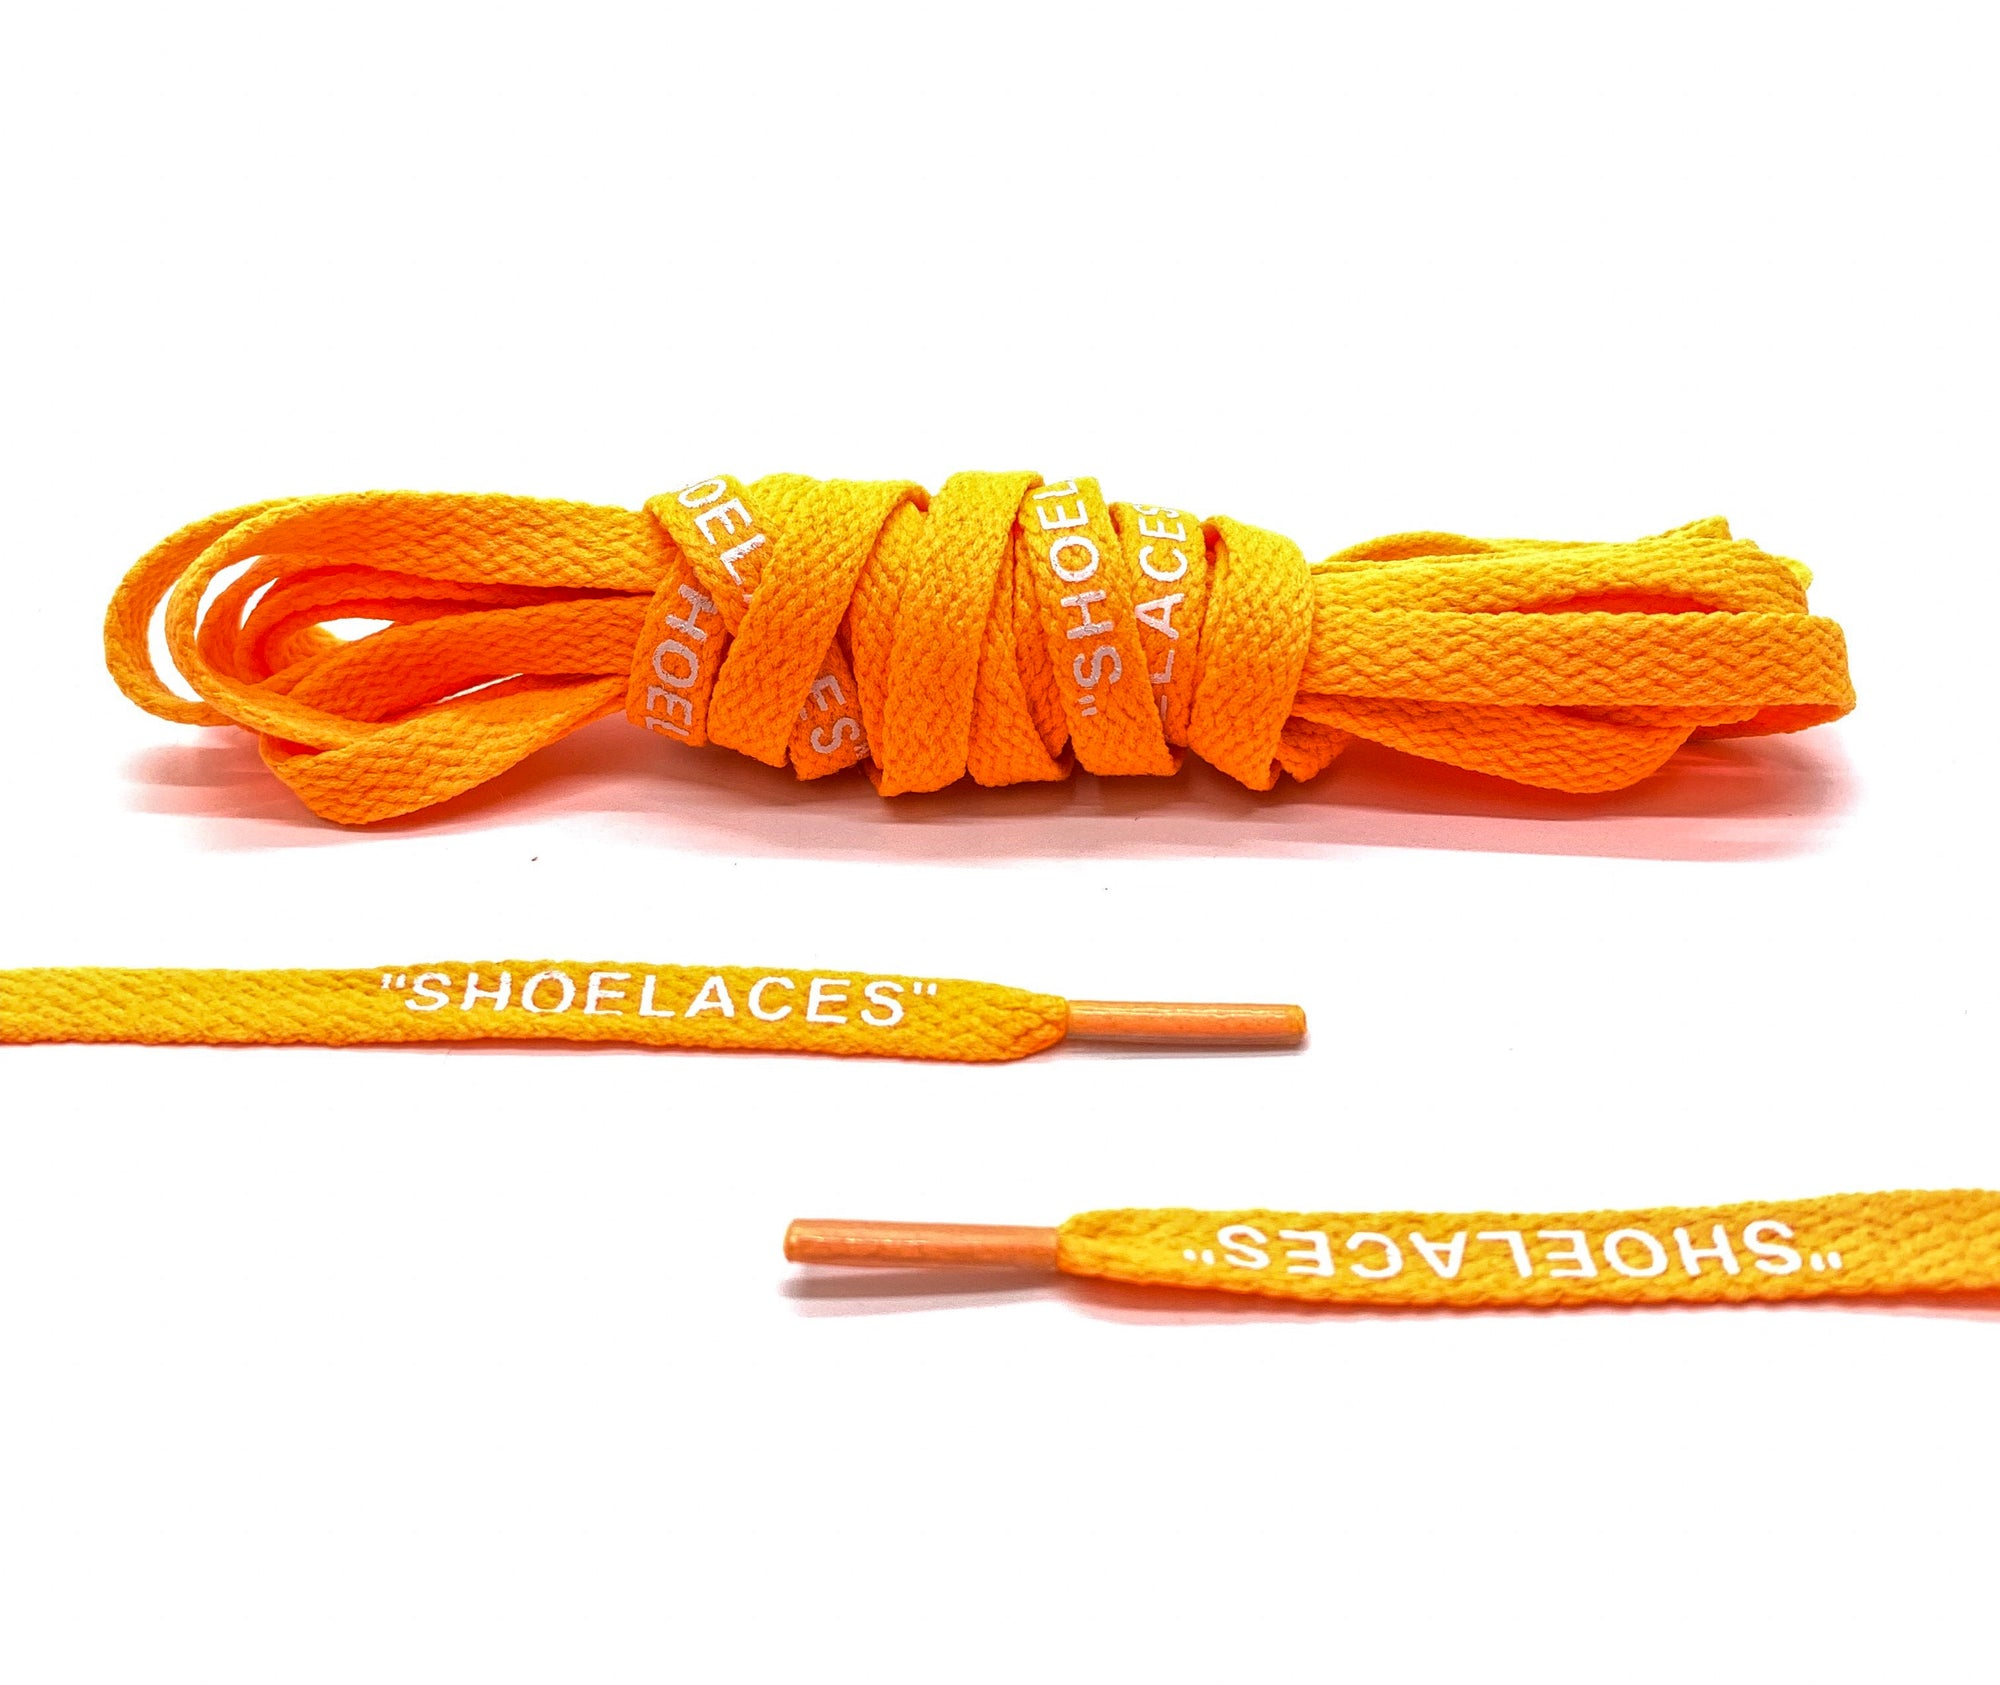 "Neon Orange Off-White ""SHOE LACES"" Laces - Belaced"